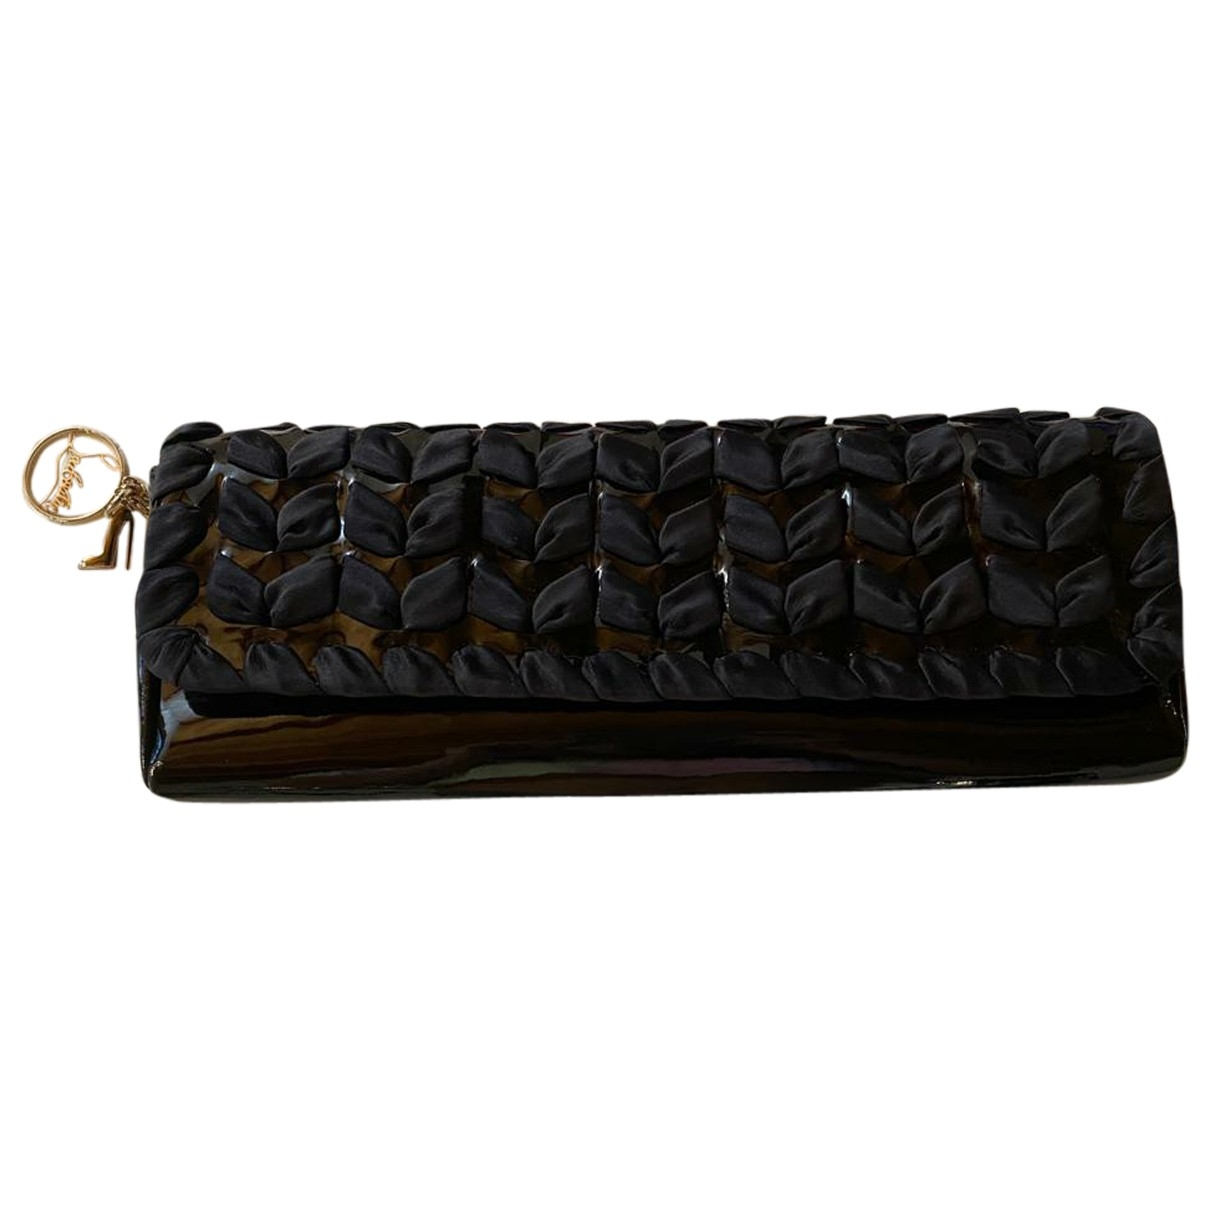 Christian Louboutin Riviera Black Leather Clutch bag for Women \N